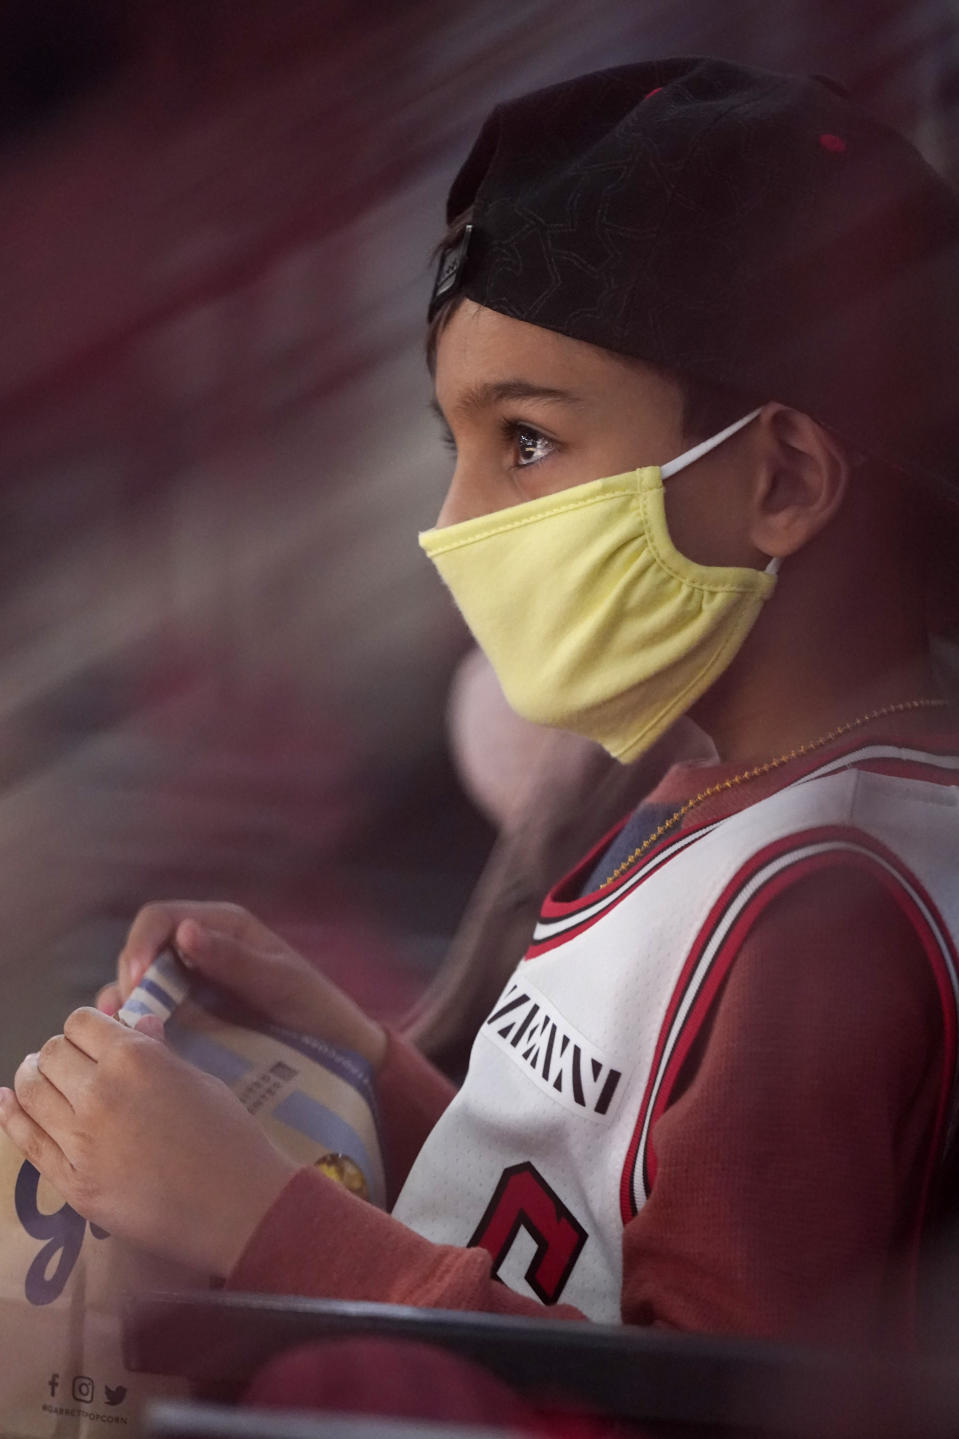 Jaxen Desai, 7, wears mask as he watches the first half of an NBA basketball game between the Boston Celtics and the Chicago Bulls in Chicago, Friday, May 7, 2021. (AP Photo/Nam Y. Huh)